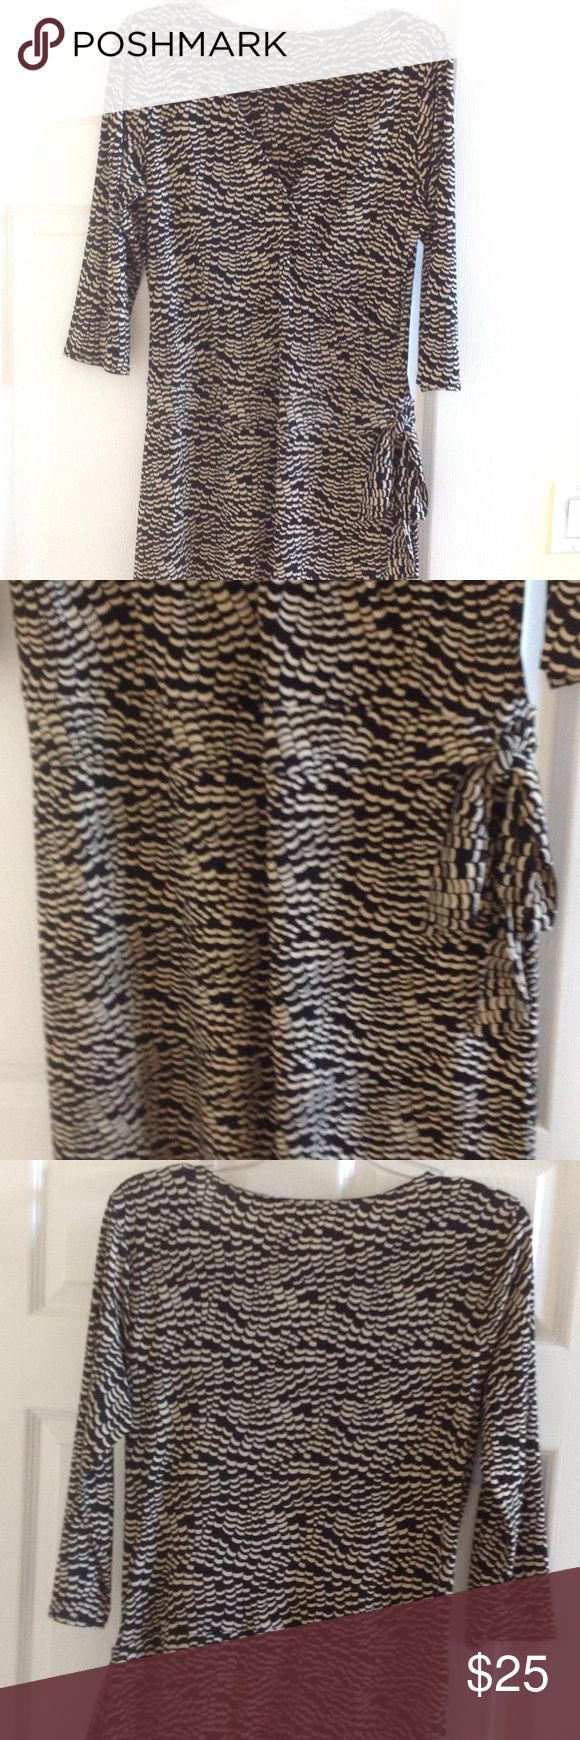 Versatile max studio wrap dress Perfect dress for work and you can definitely dress it up for a night outing. Perfect condition. Label is cut however it is authentic max studio dress. Max Studio Dresses Midi